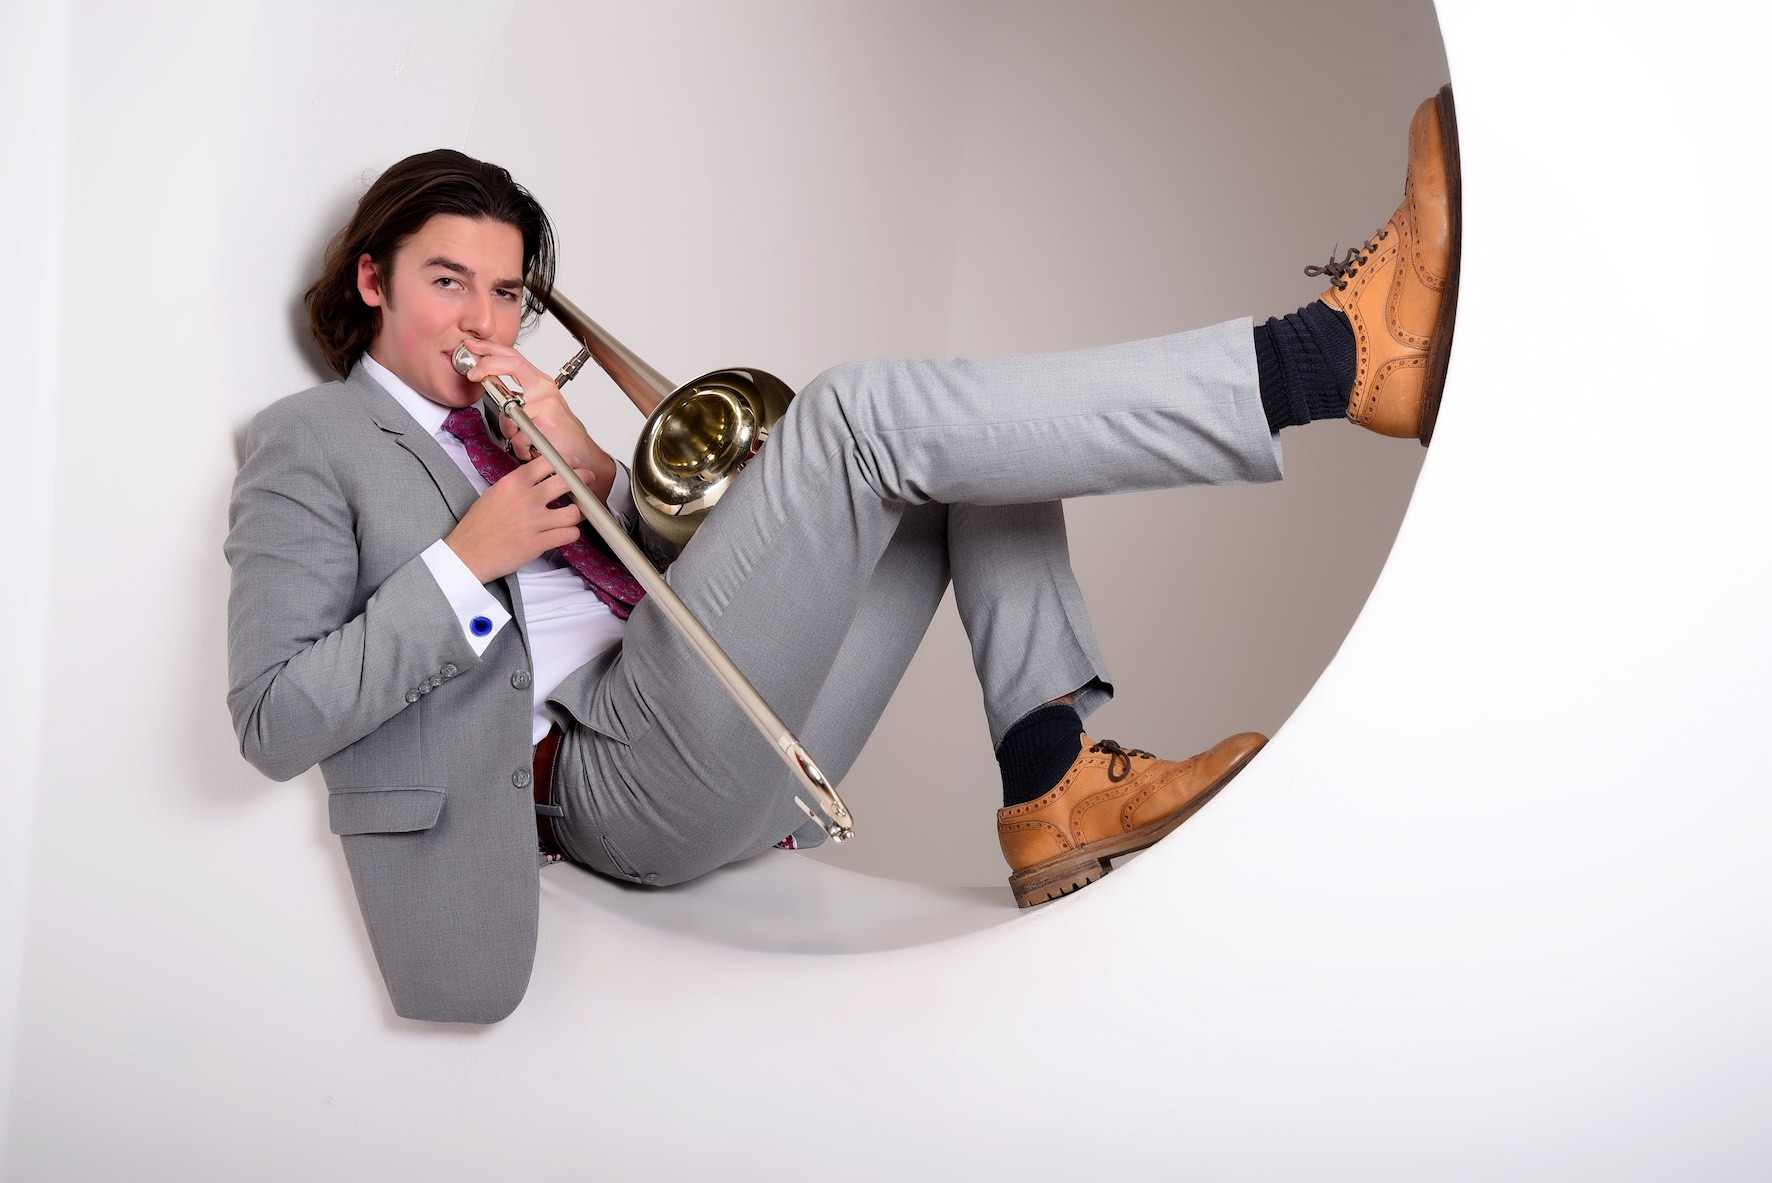 RORY INGHAM - JAZZDOOR 7PM / MUSIC 8.30PM£10 / £9 / £5 (BK)EMAIL TO RESERVE